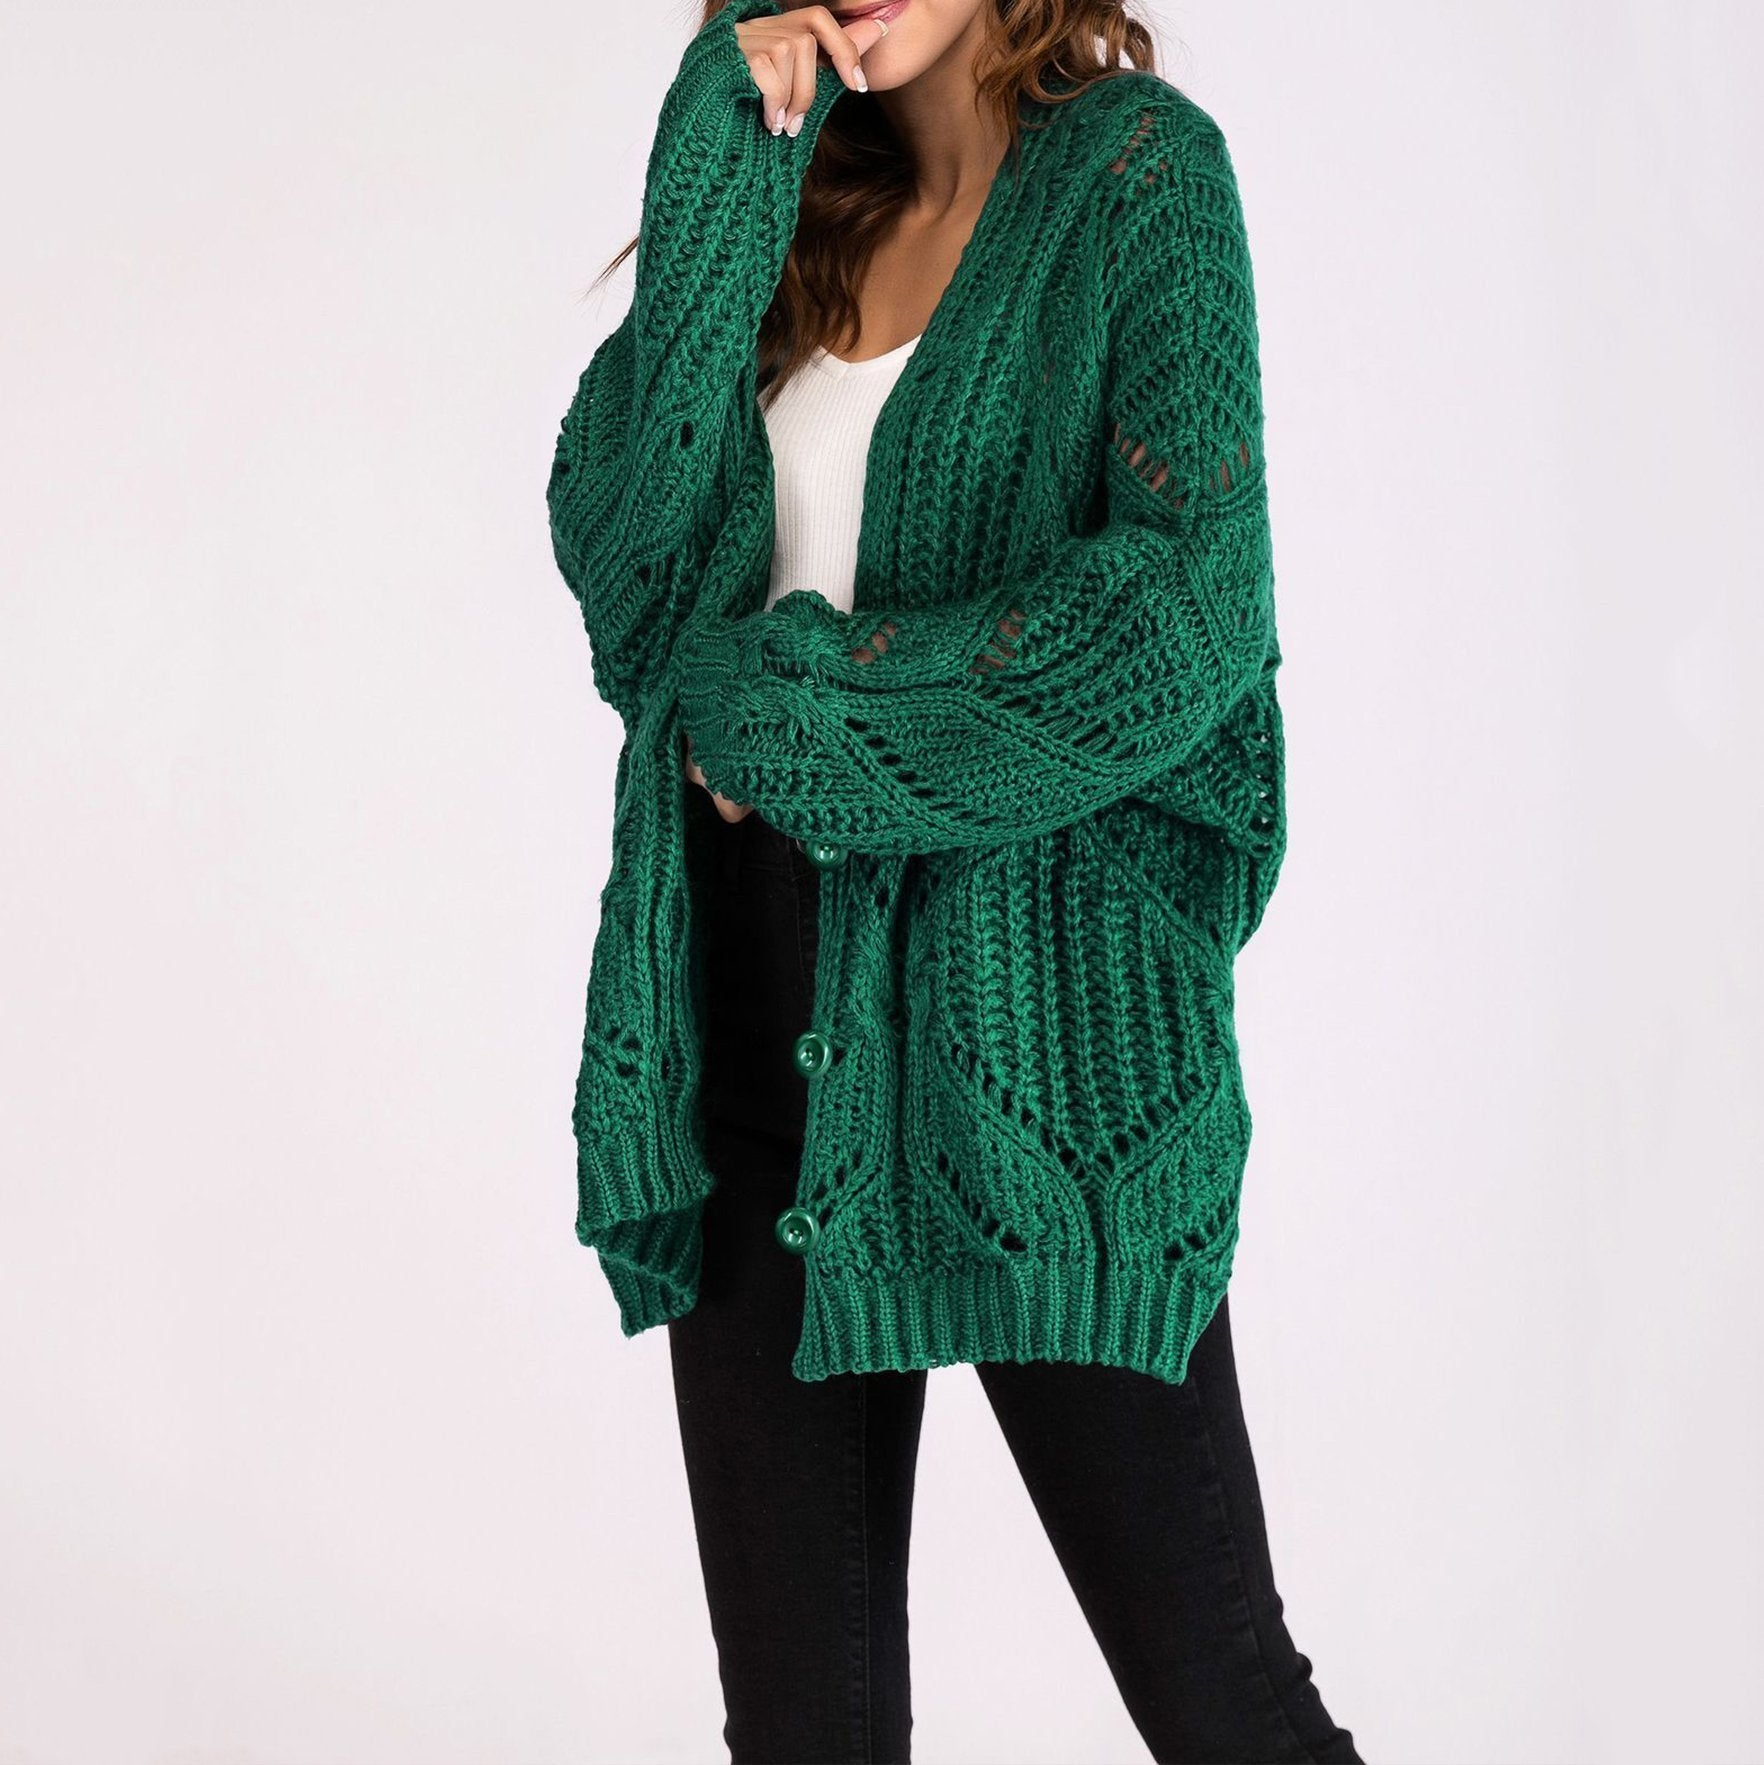 PMS Cardigan Green / one size Women's Fashion Long Sleeves Hollow Sweater Cardigan